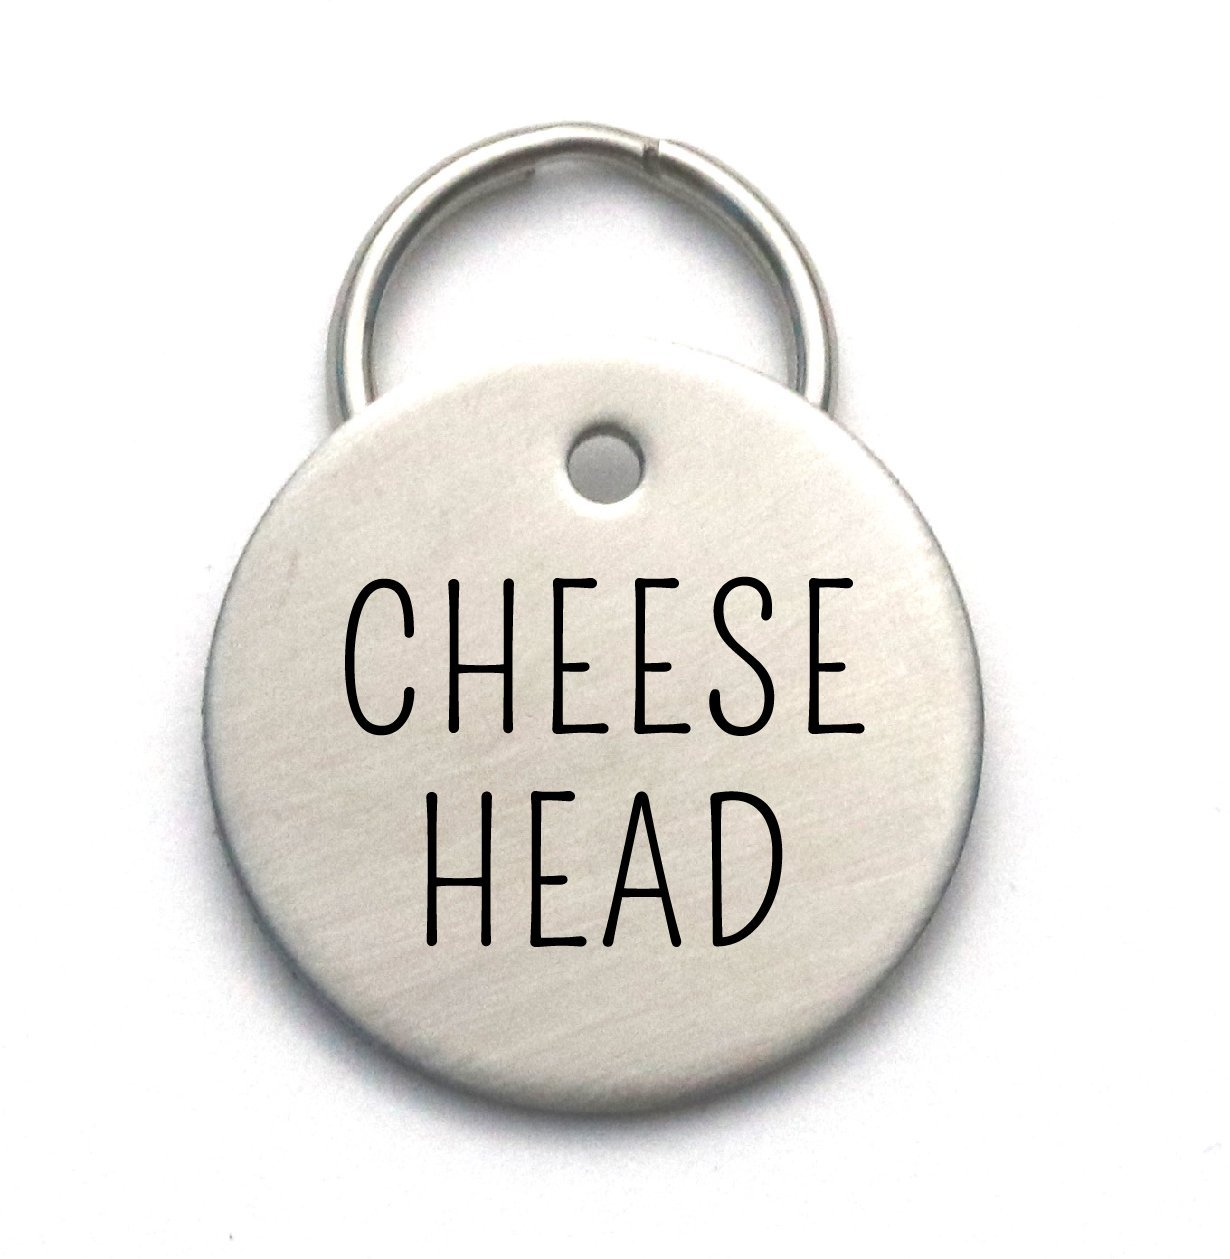 Cheese Head - Funny Custom Dog Tag Made of Strong Metal, Personalized With Pet's Name and Phone by Critter Bling